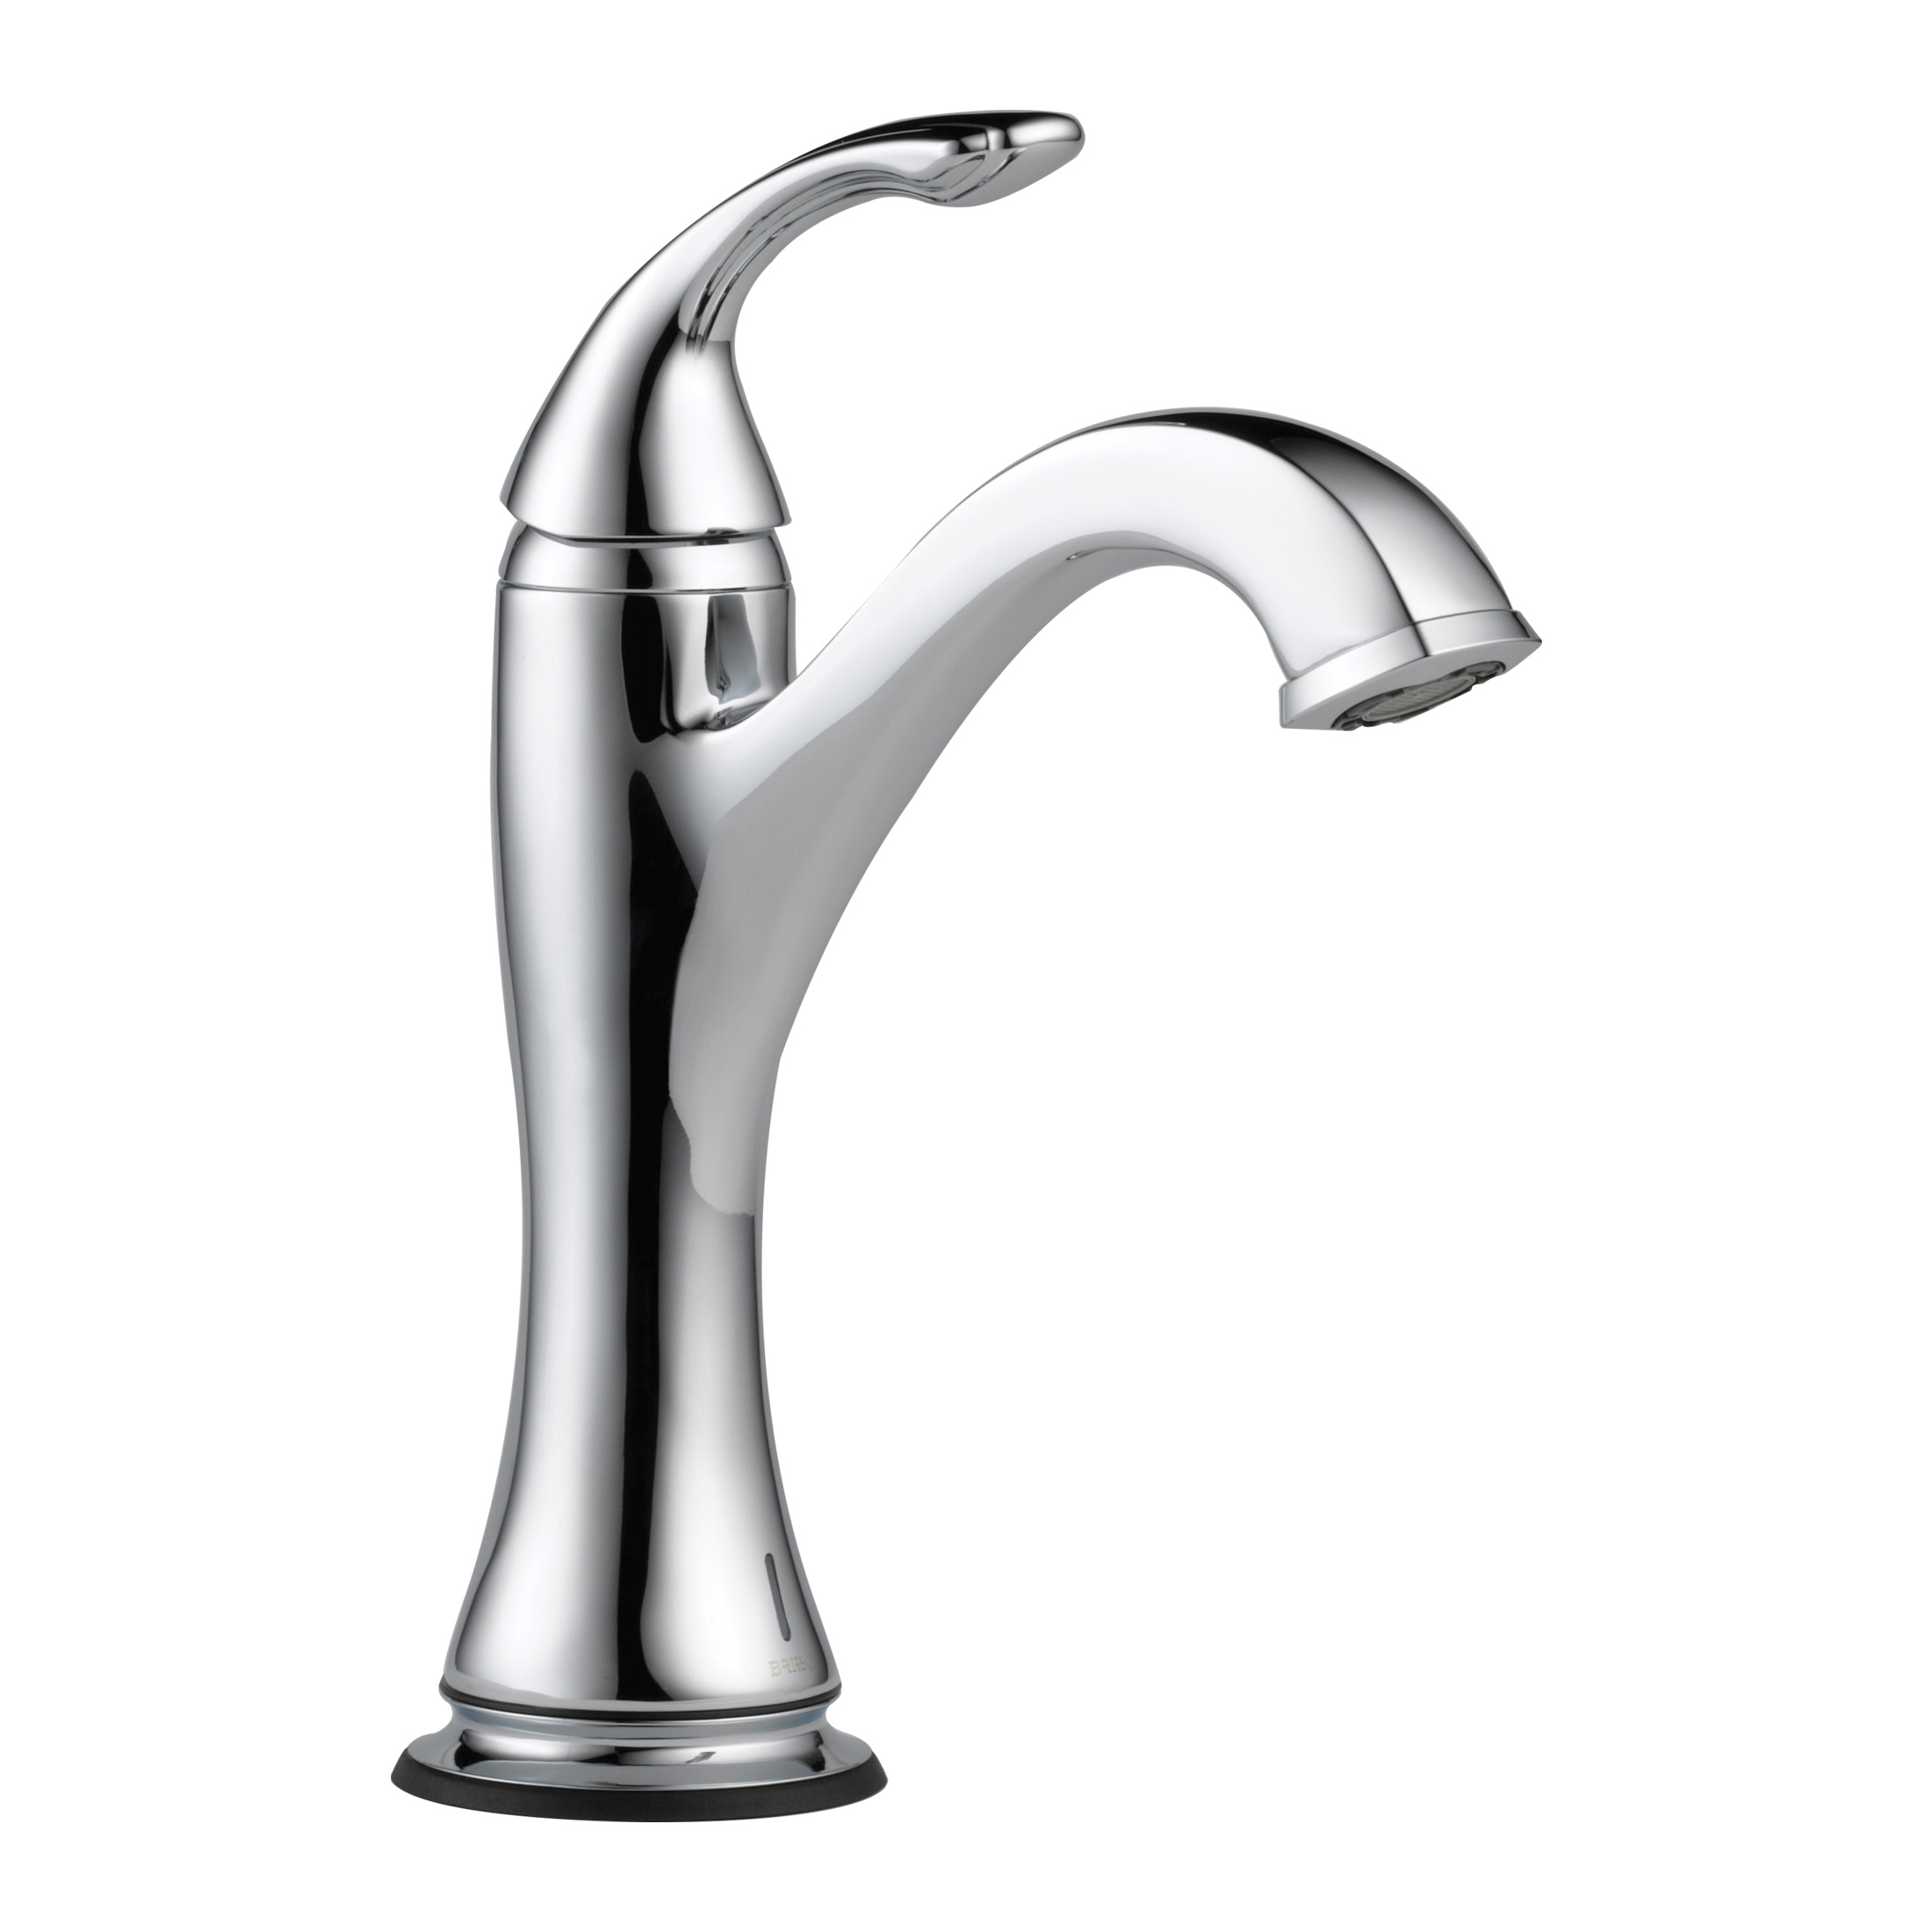 Brizo® 65985LF-PC Charlotte® Lavatory Faucet, 1.5 gpm, 5-3/4 in H Spout, 1 Handle, 1 Faucet Hole, Chrome Plated, Domestic